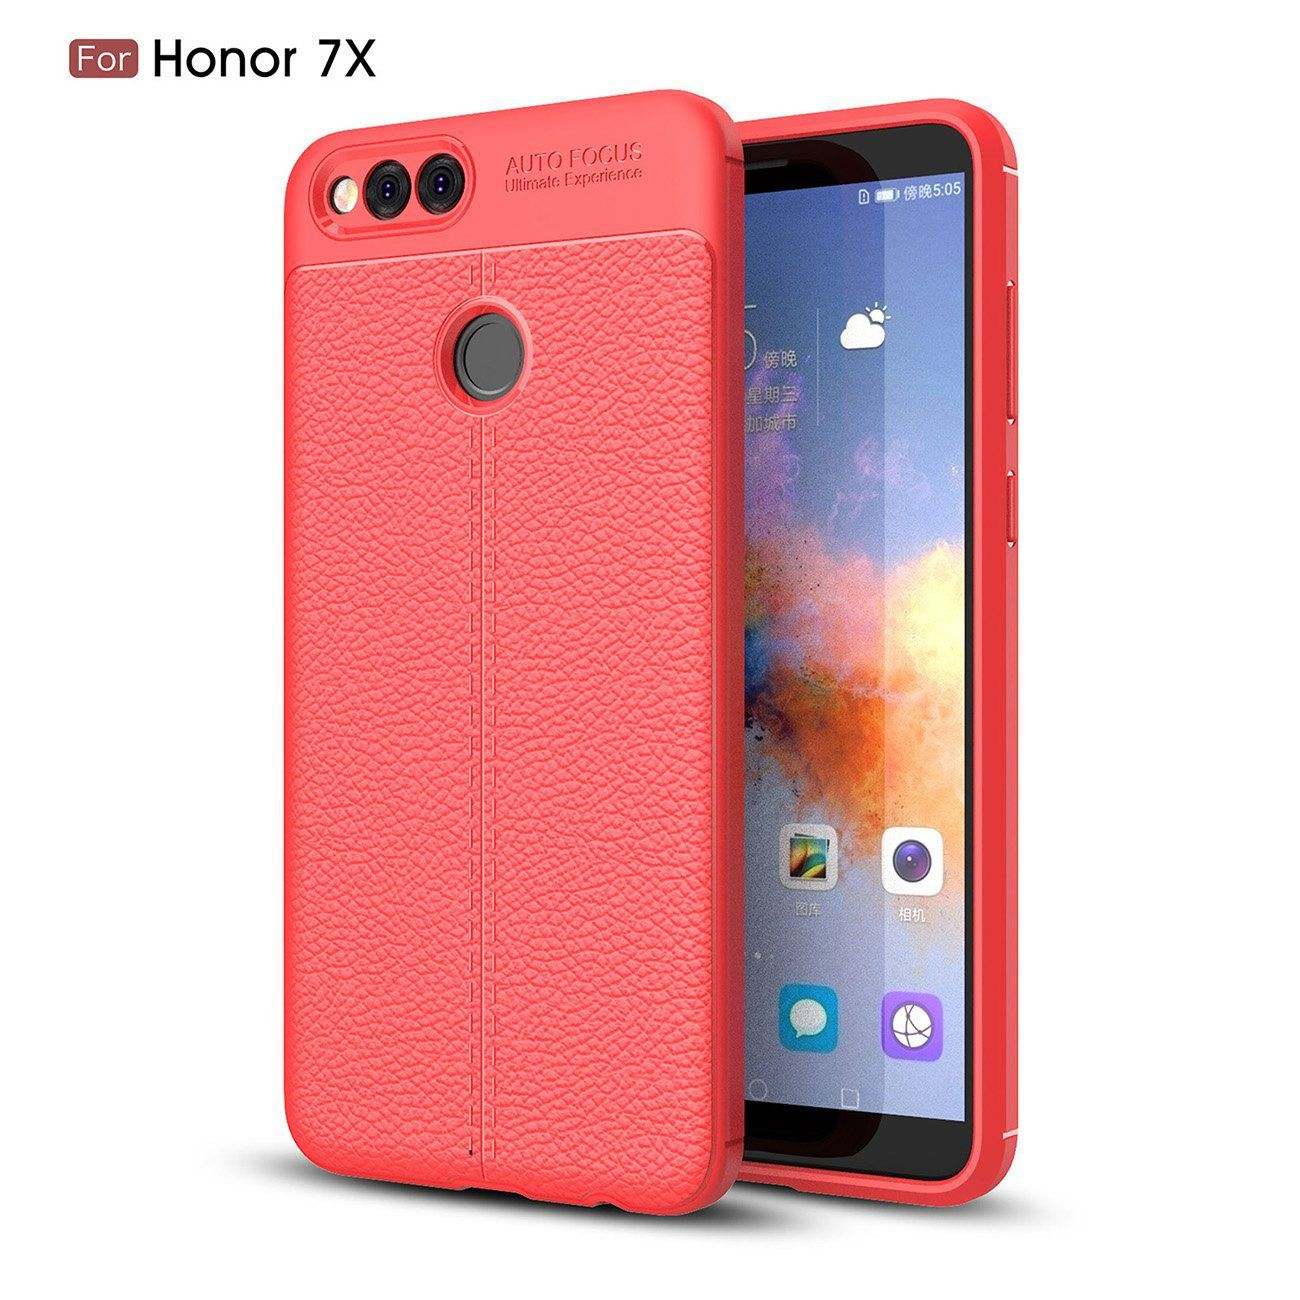 new style 0ecc5 53505 Honor 7x Soft Silicon Cases Wow Imagine - Red